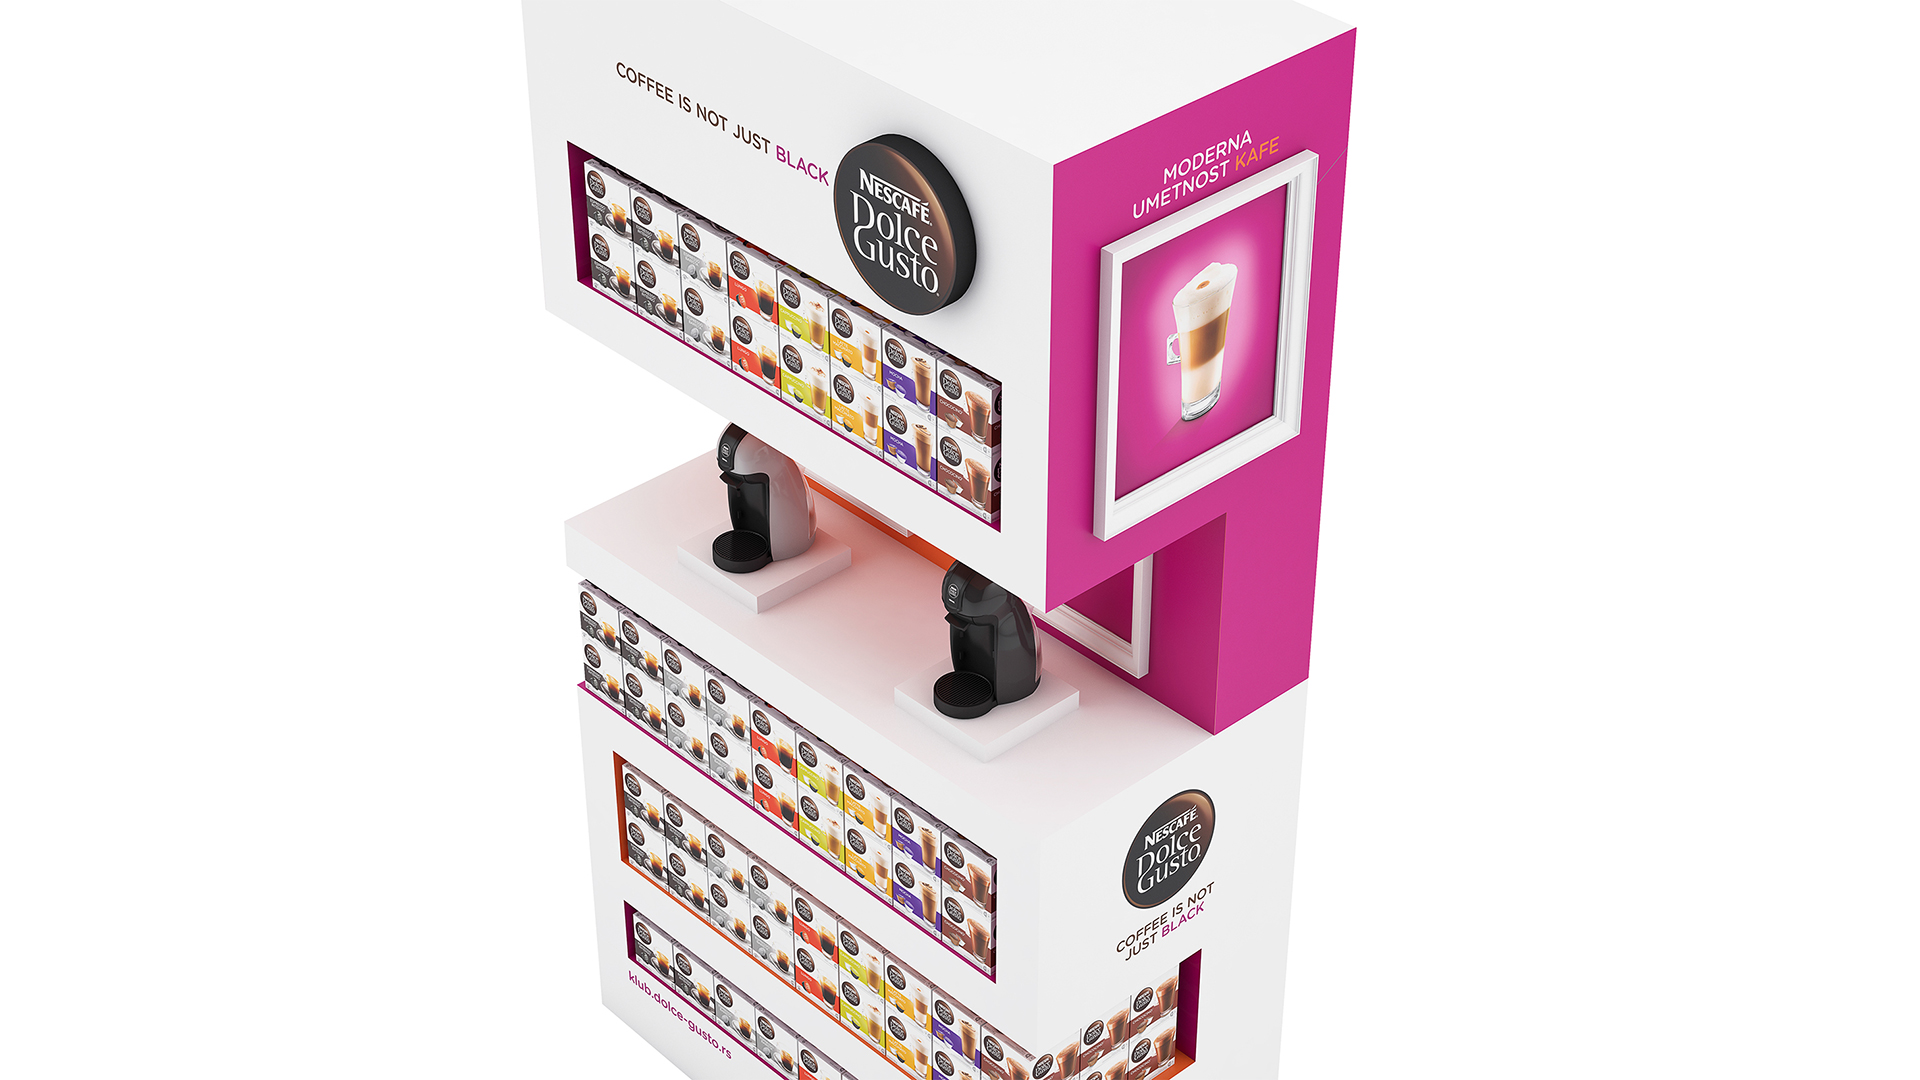 Nescafe Dolce Gusto coffee aparat